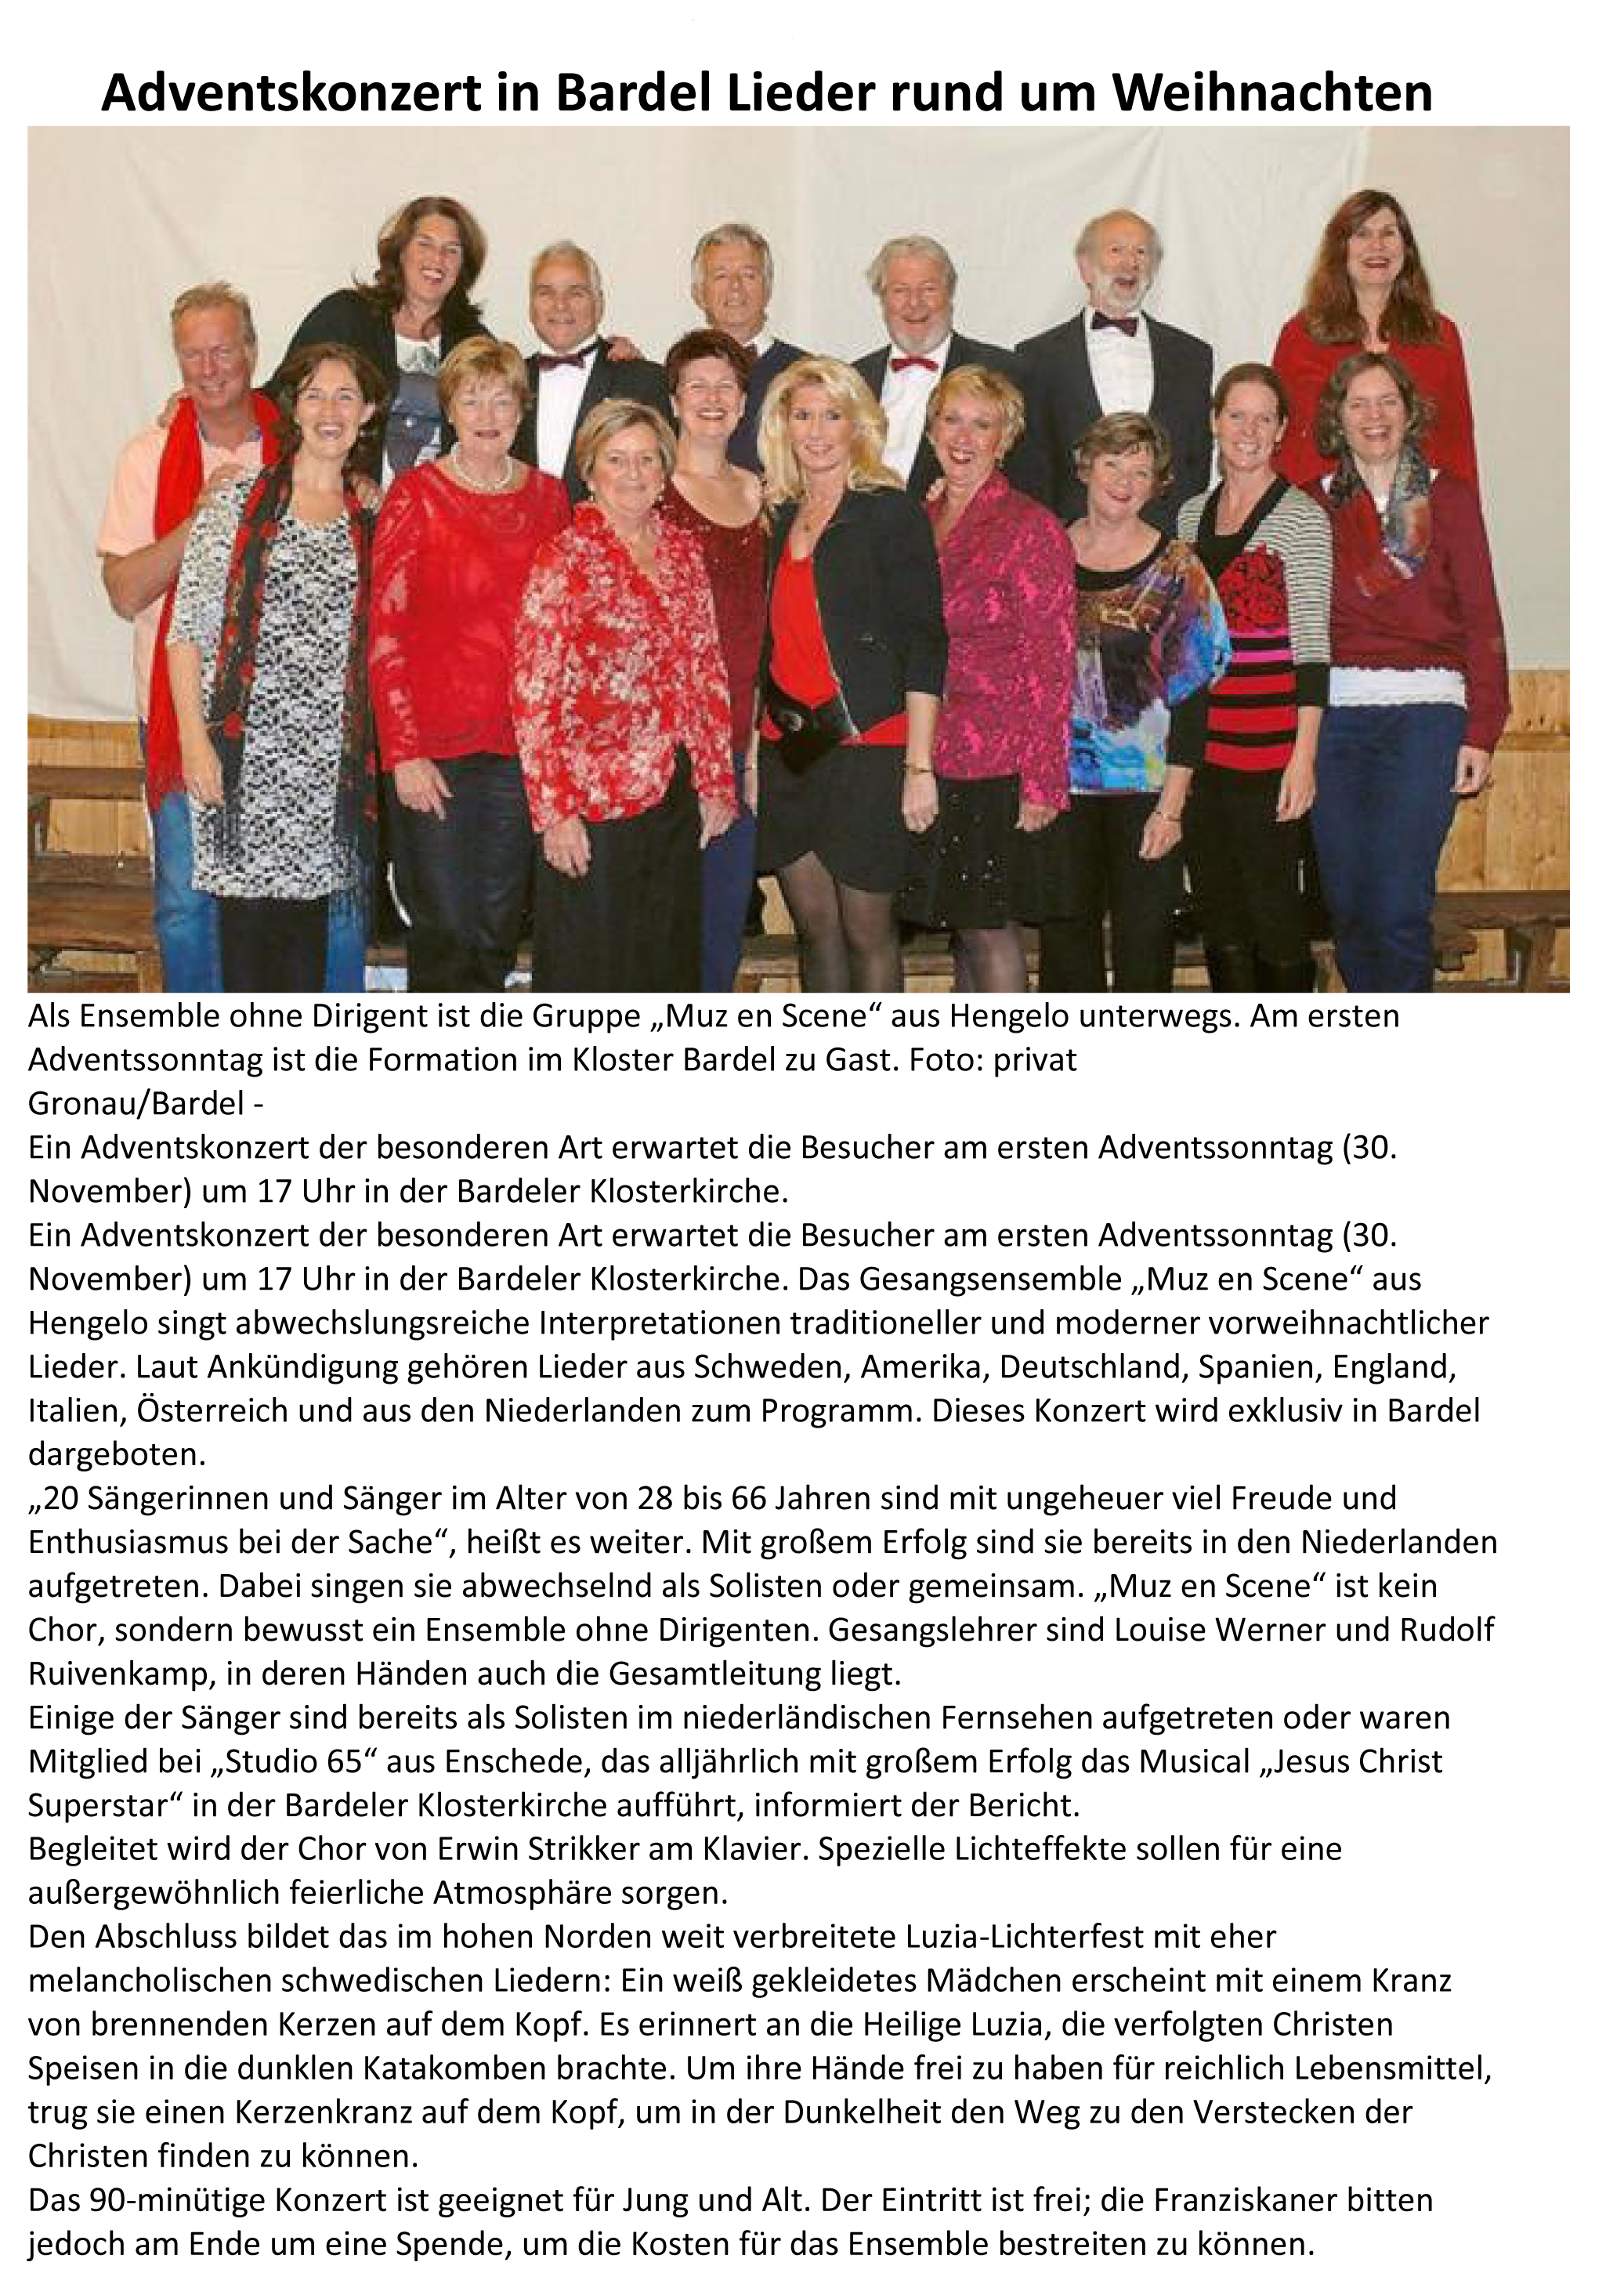 Adventskonzert in Bardel mod 2014